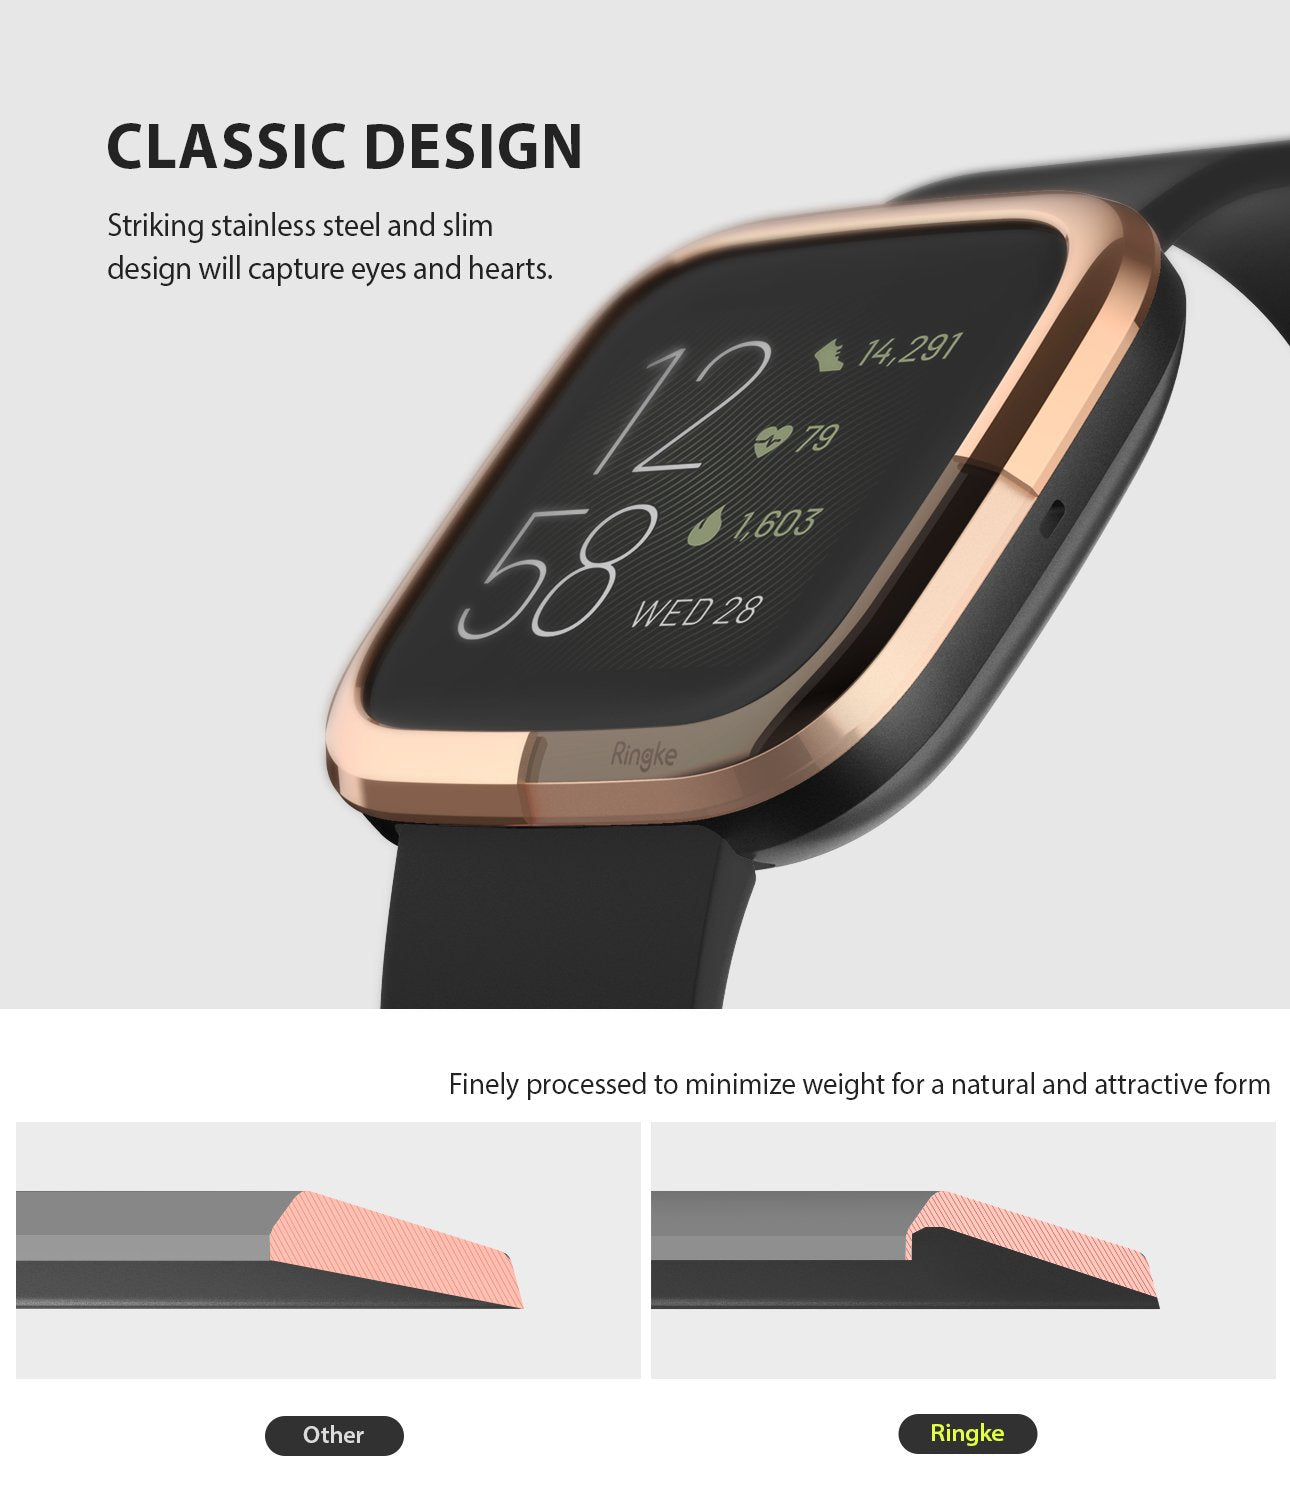 Ringke Bezel Styling Fitbit Versa 2, Full Stainless Steel Frame, Rose Gold, Stainless Steel, 2-02 ST,classic design